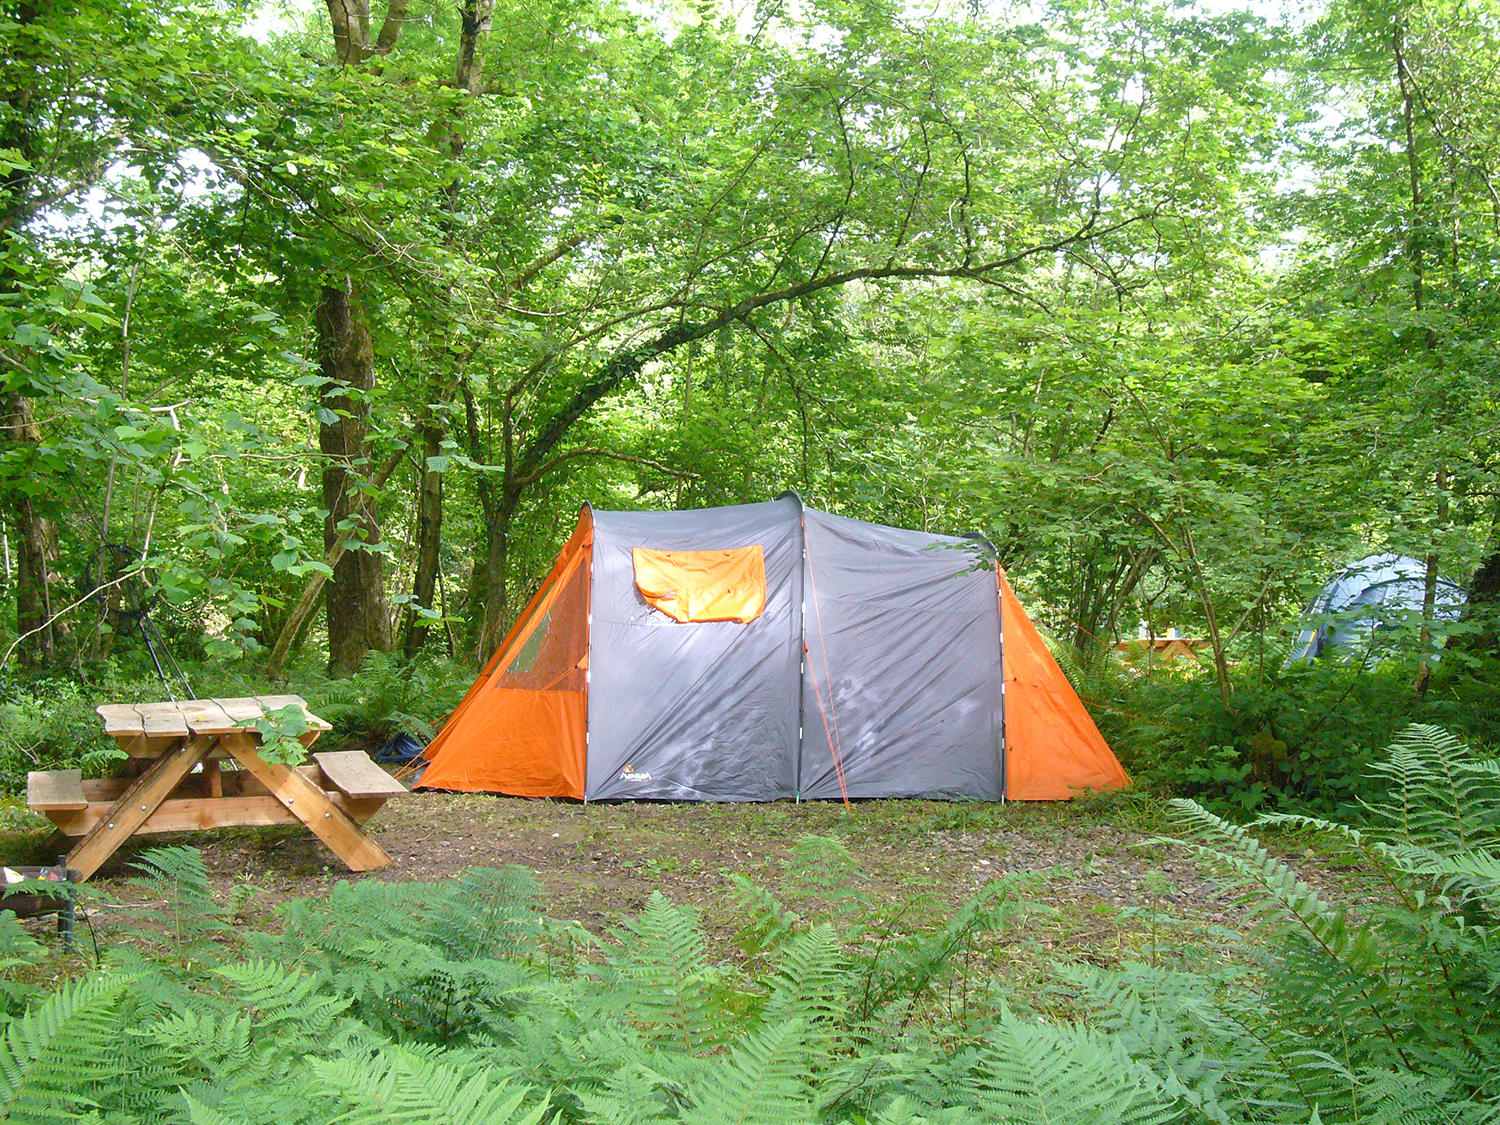 Private woodland camping pitches